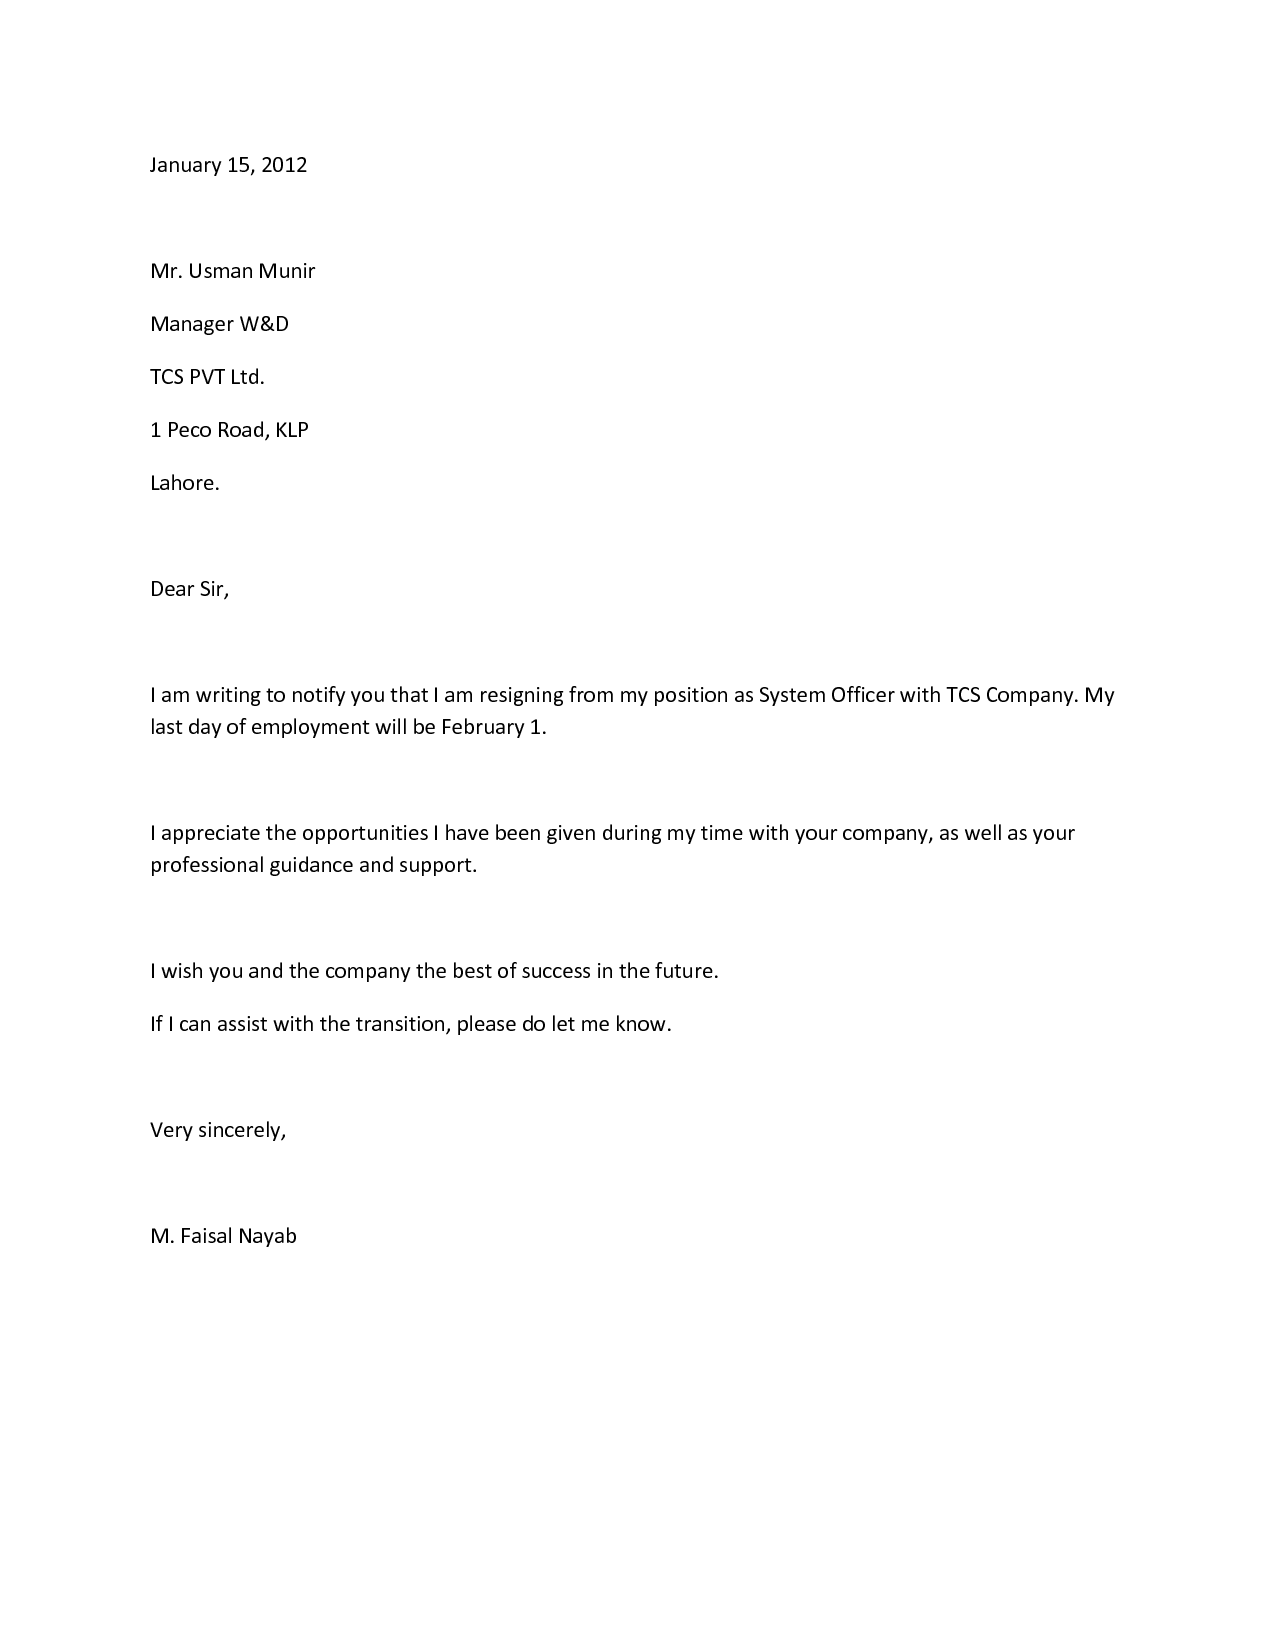 Sample Professional Letter Formats – Sample of Professional Resignation Letter